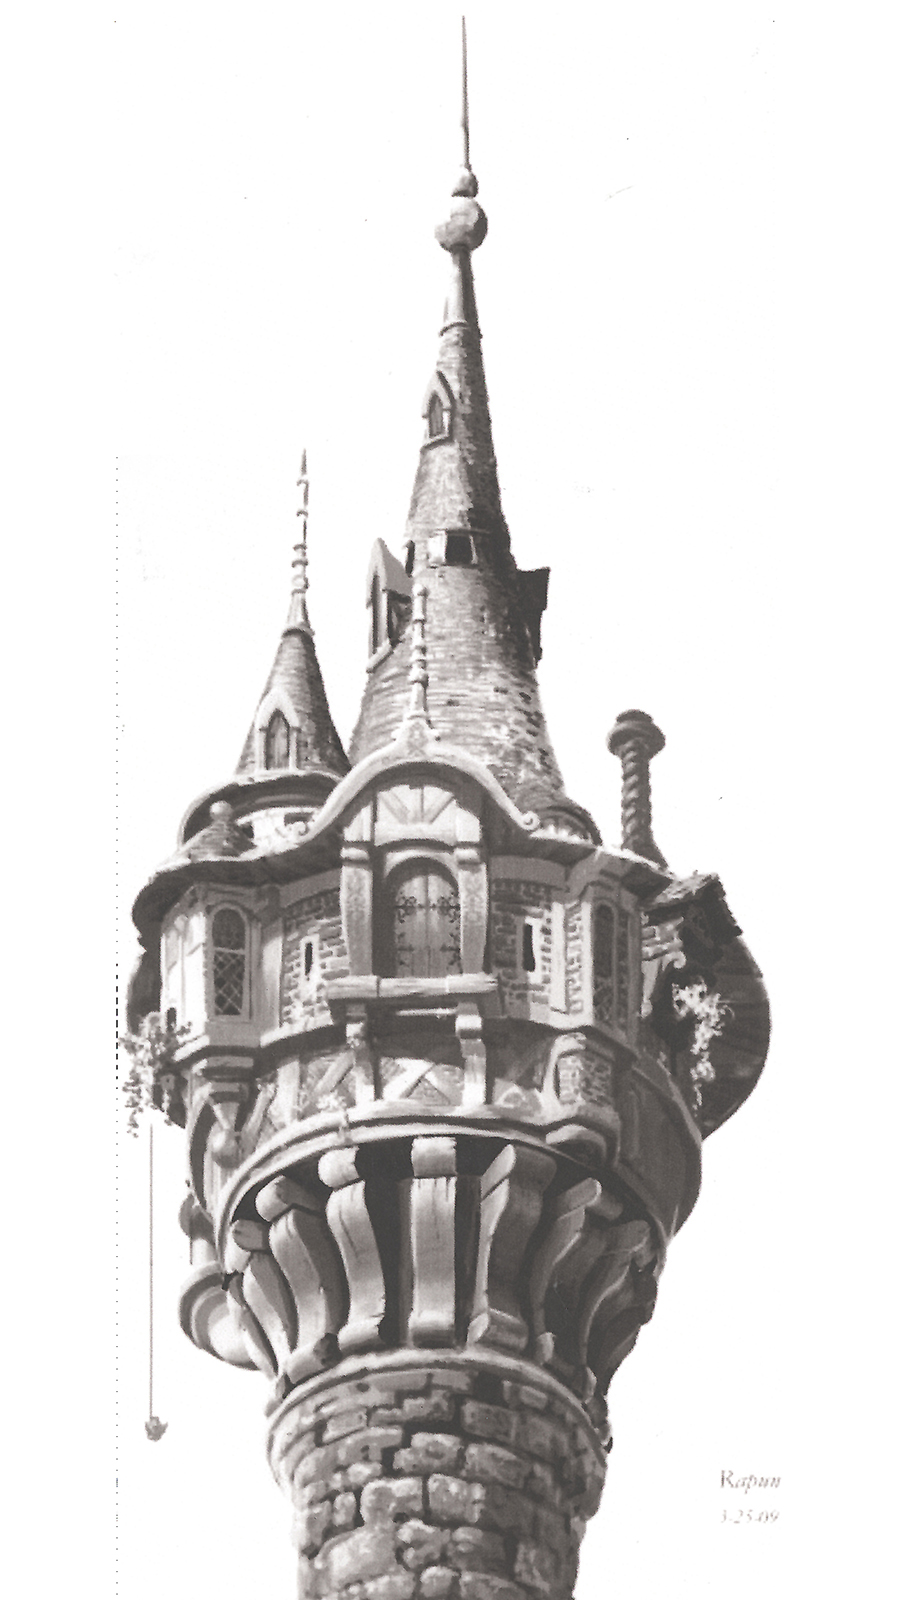 Rogers work on Tangled included this Tower concept